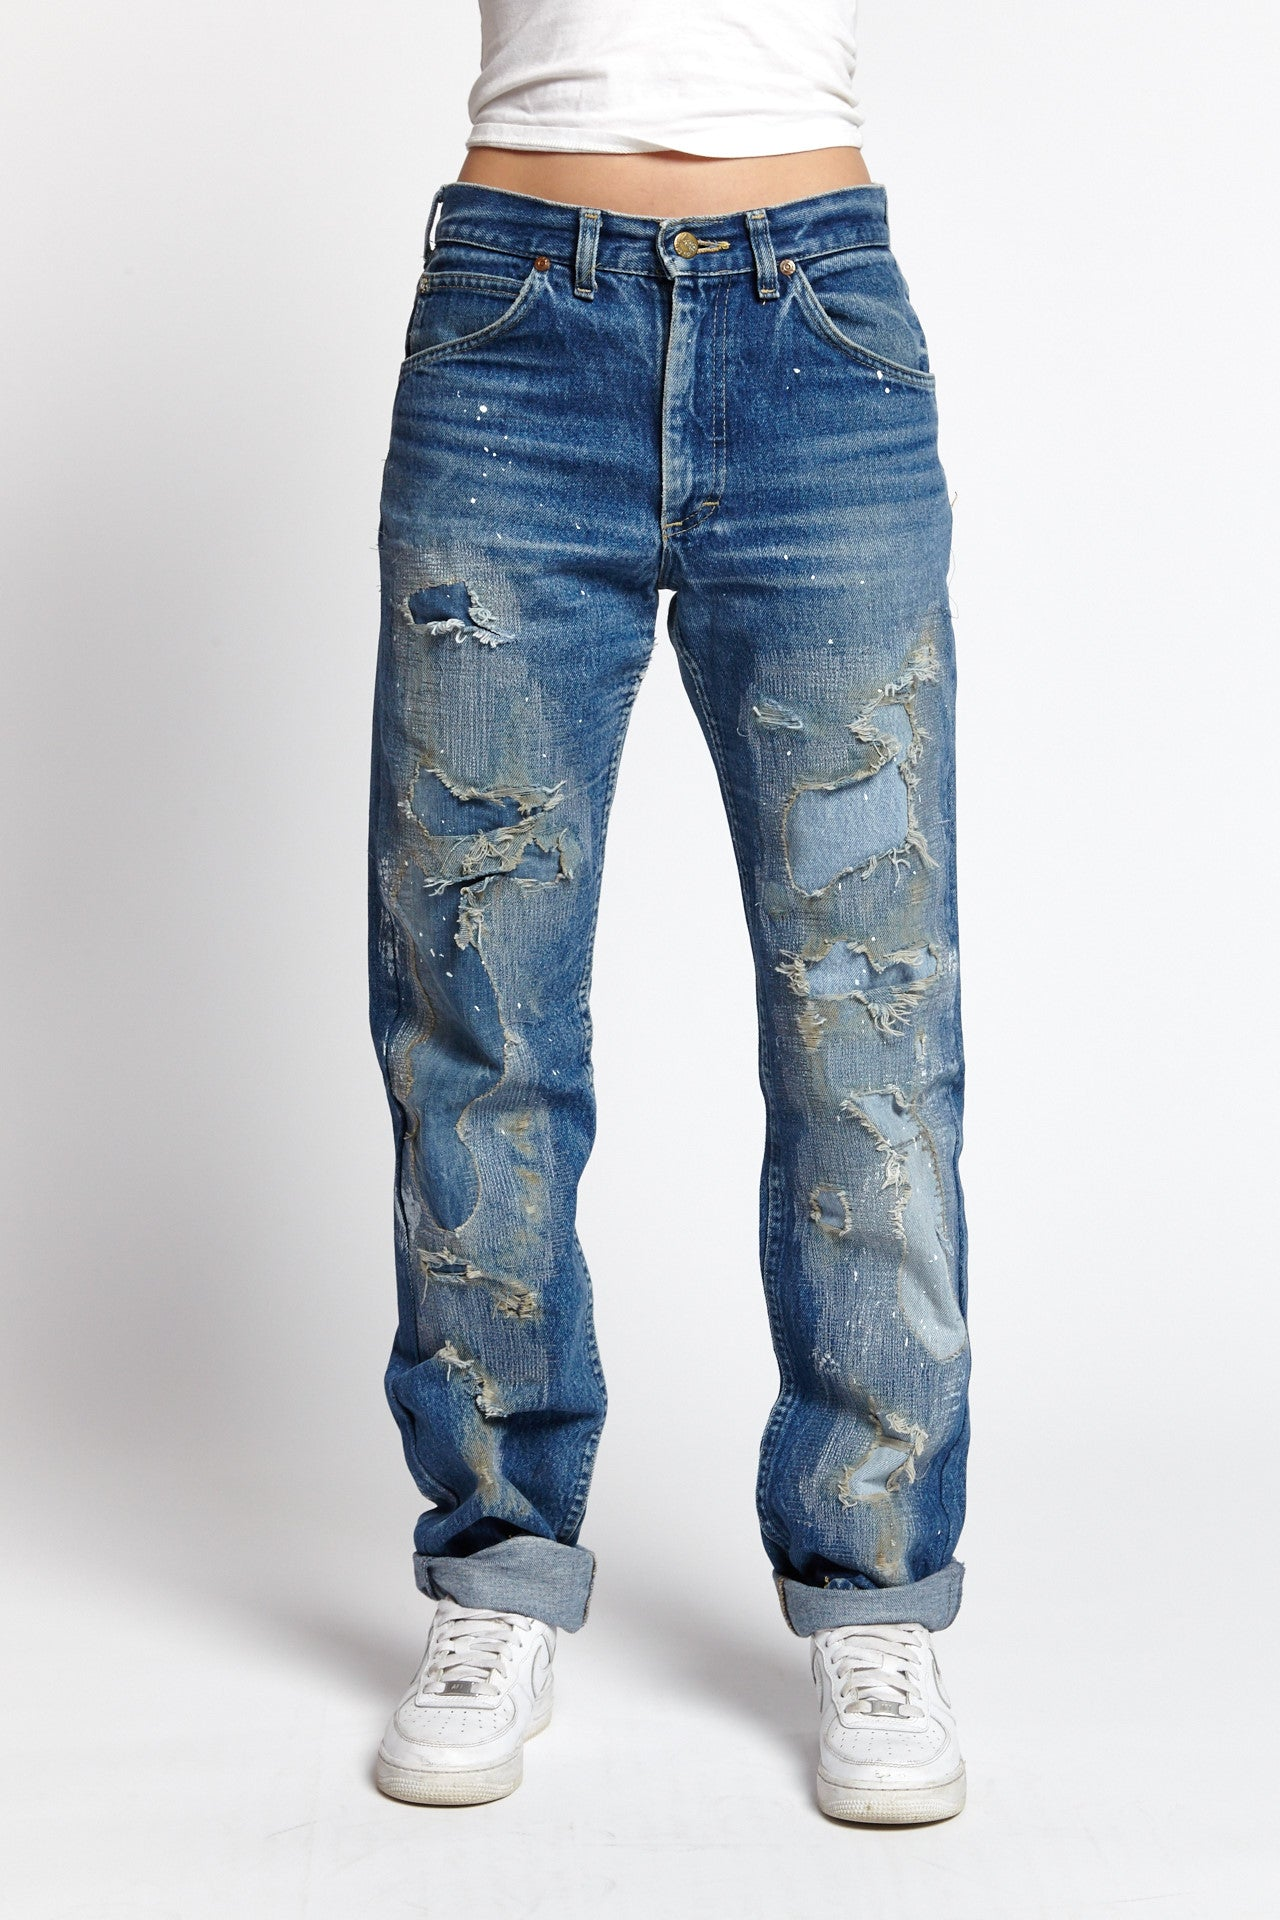 MILLIE RIGHE DISTRESSED COTTON BLUE 30 W JEANS-BOTTOMS-Mundane Official-30-BLUE-Mundane Official